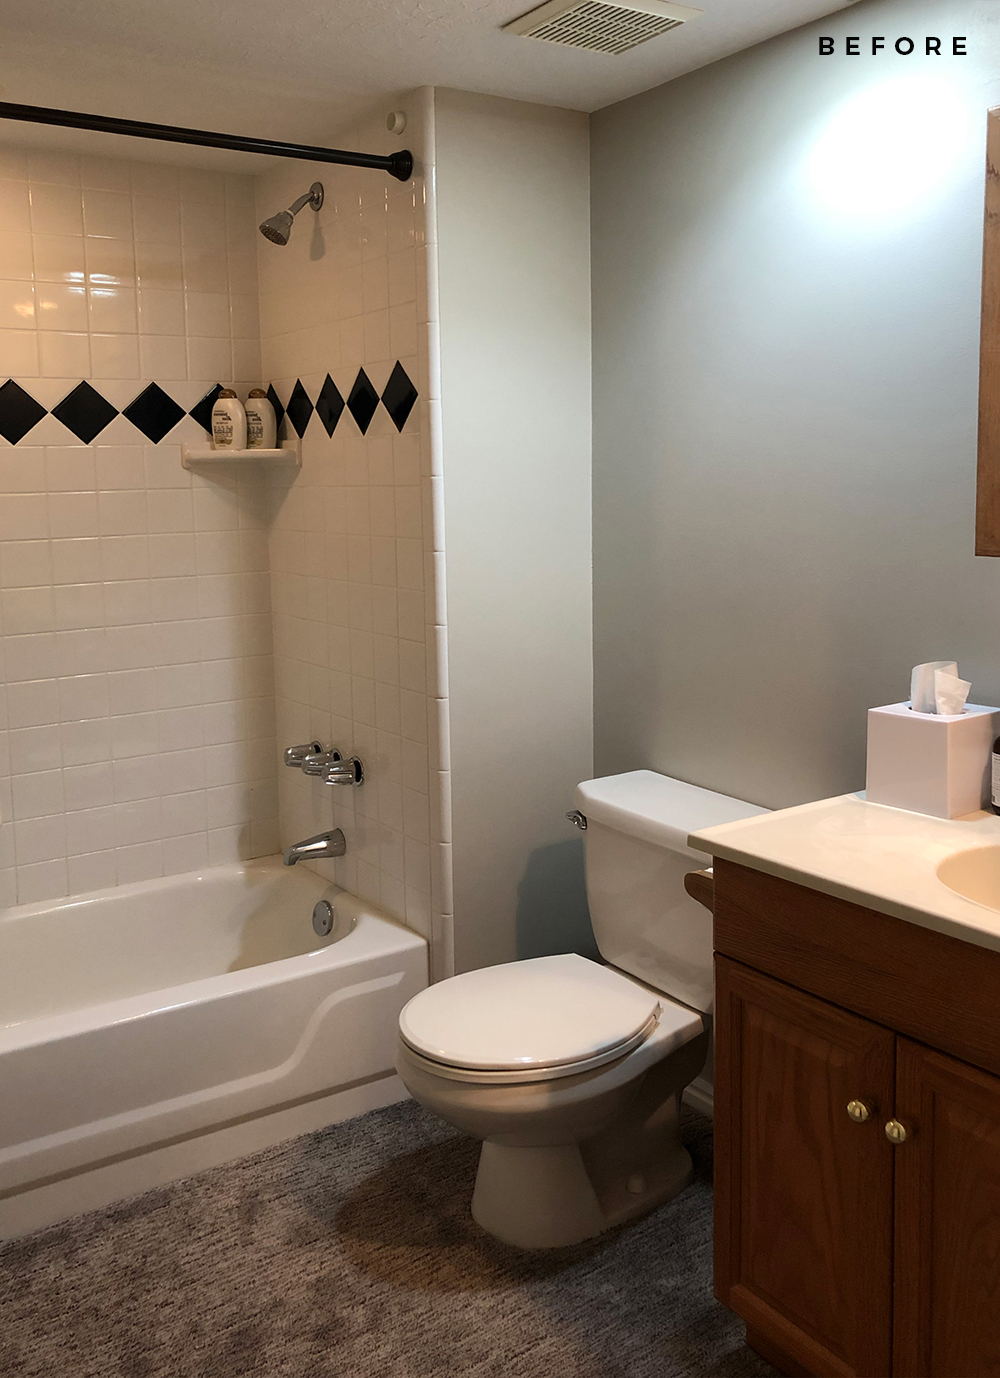 Our Basement Bathroom Design Plan & Before Images - roomfortuesday.com